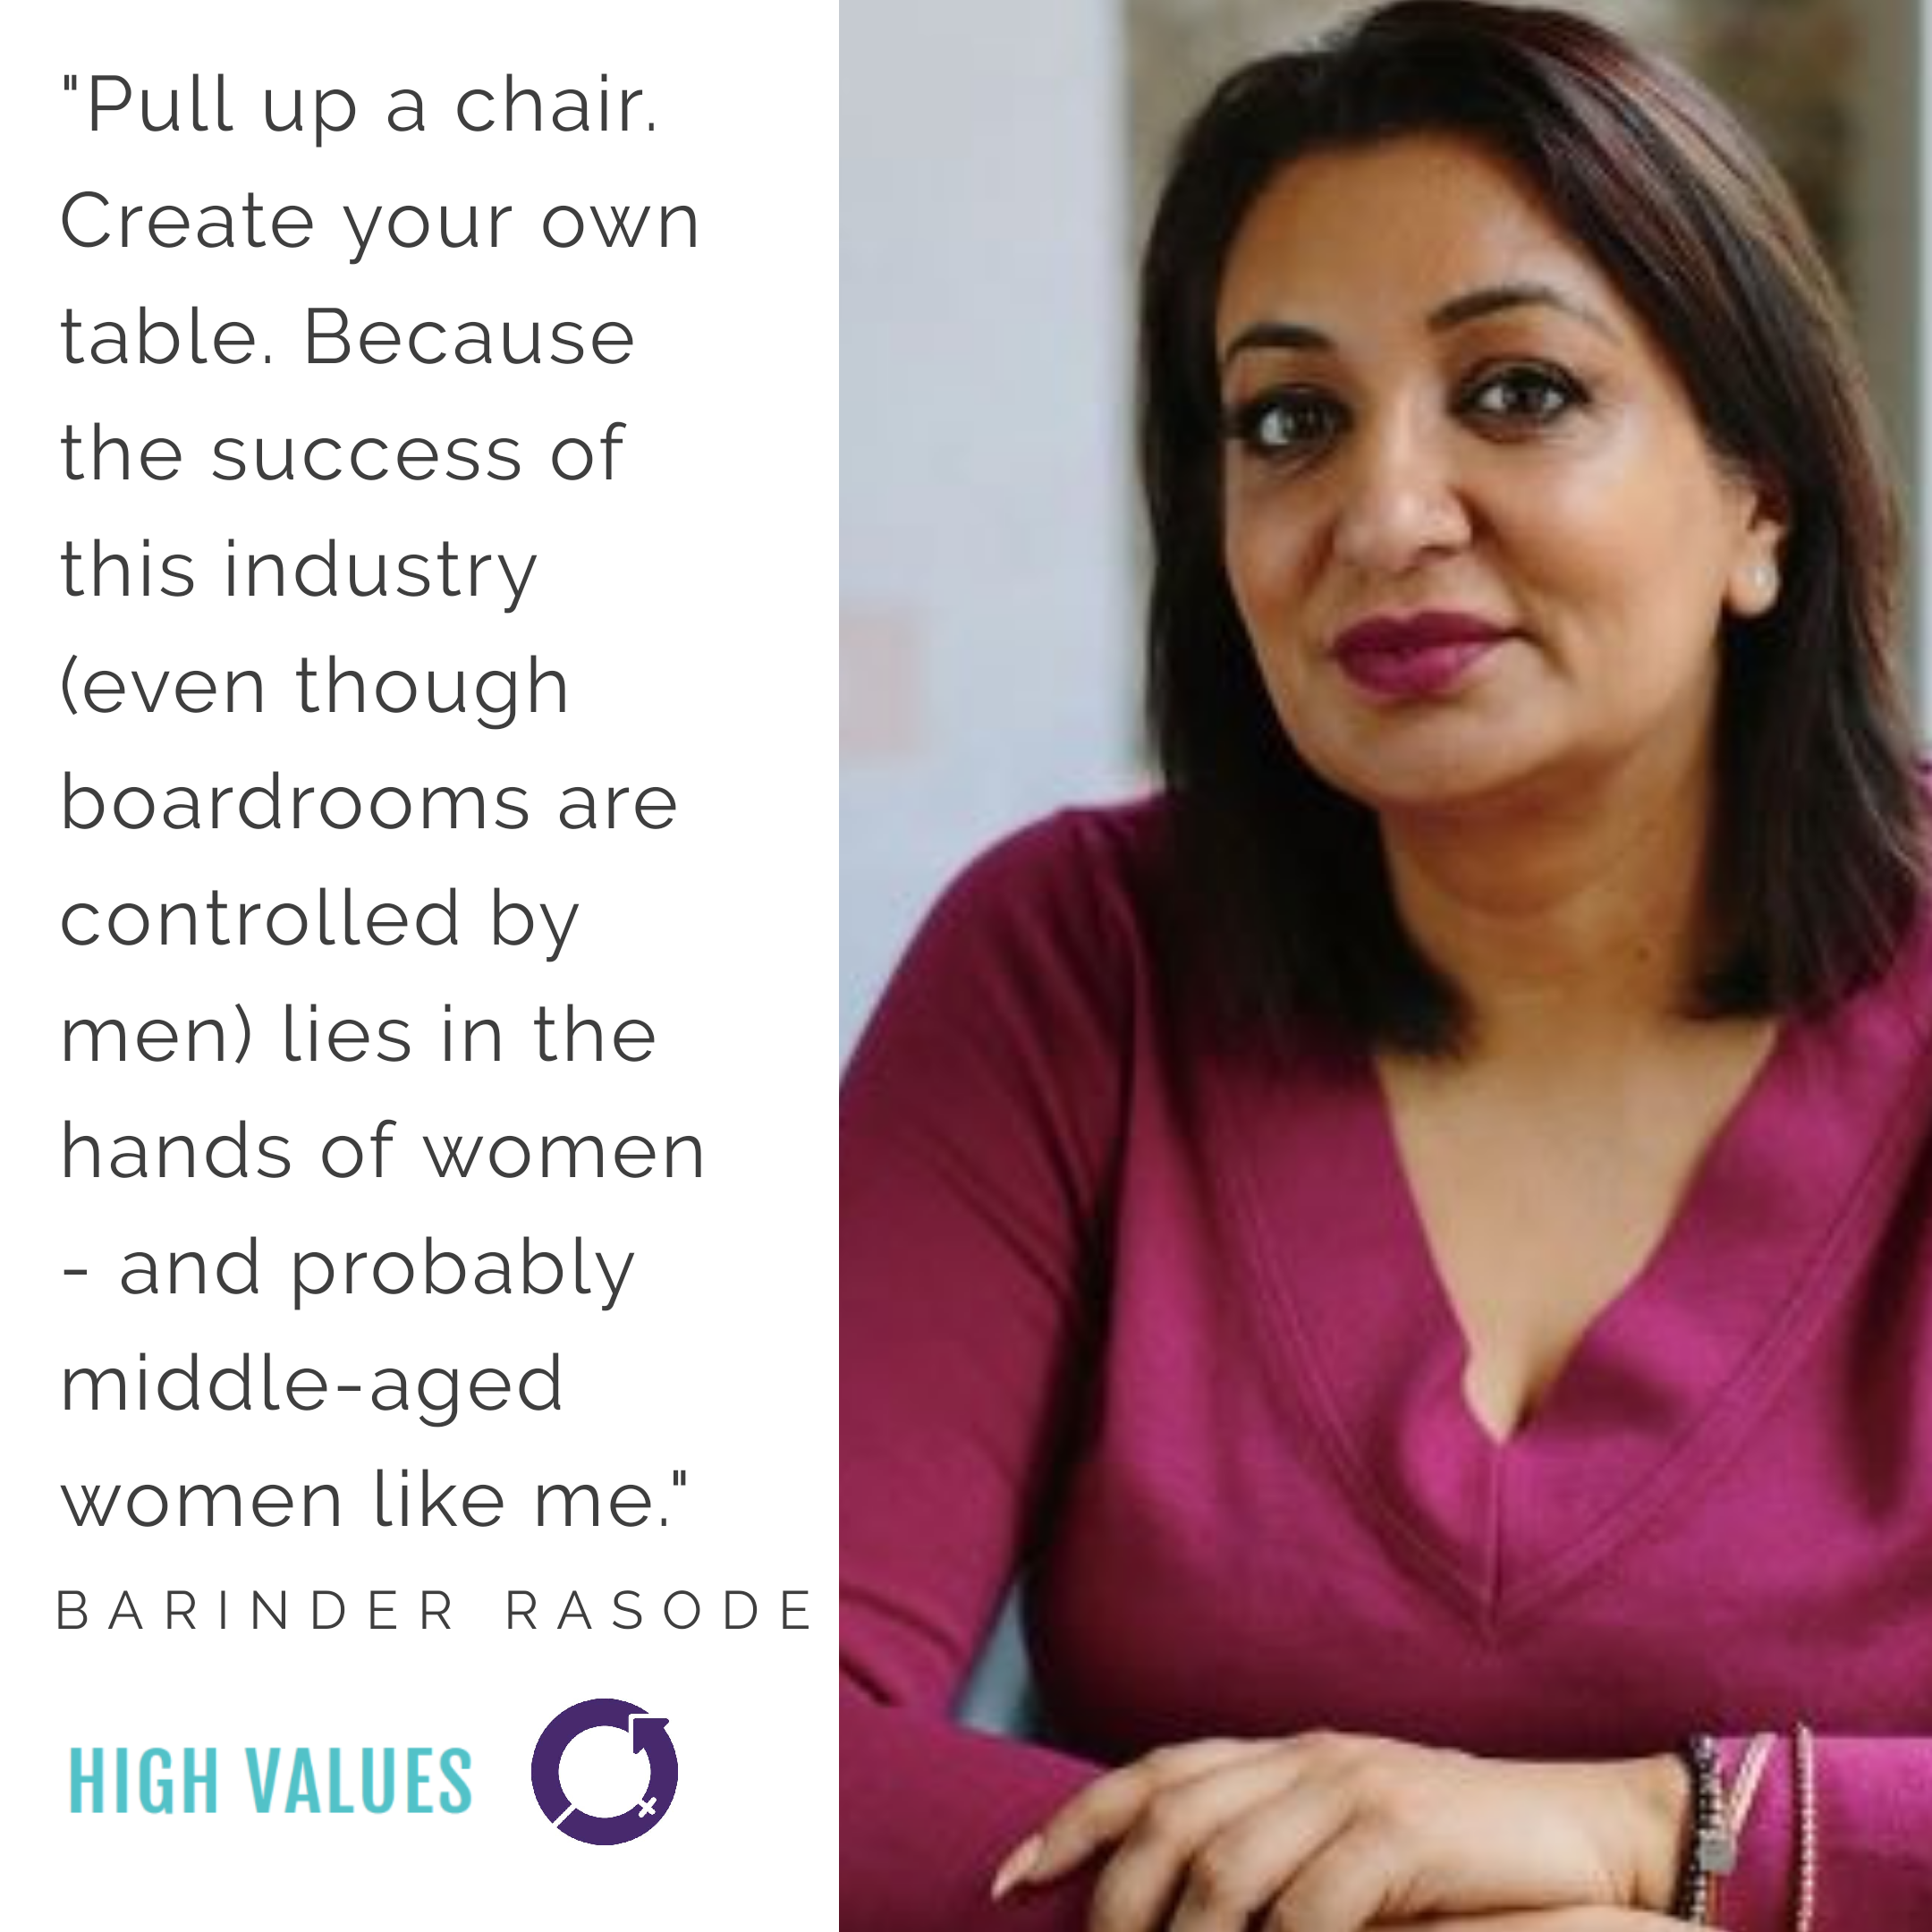 """Barinder Rasode , Co-Founder and CEO at  Grow Tech Labs    International Women's Day 2019:  Grow Tech Labs held an IWD event in partnership with CanWeeDine at Launch Academy, their cohort's office. The event provided opportunity for authentic conversation between women working in the industry.  """"It's about growing the family, and we're blessed. There are some amazing, intelligent, business minded, and innovative women in the space, so it's just about creating opportunities to get their voice out.""""  Access  full article here ."""